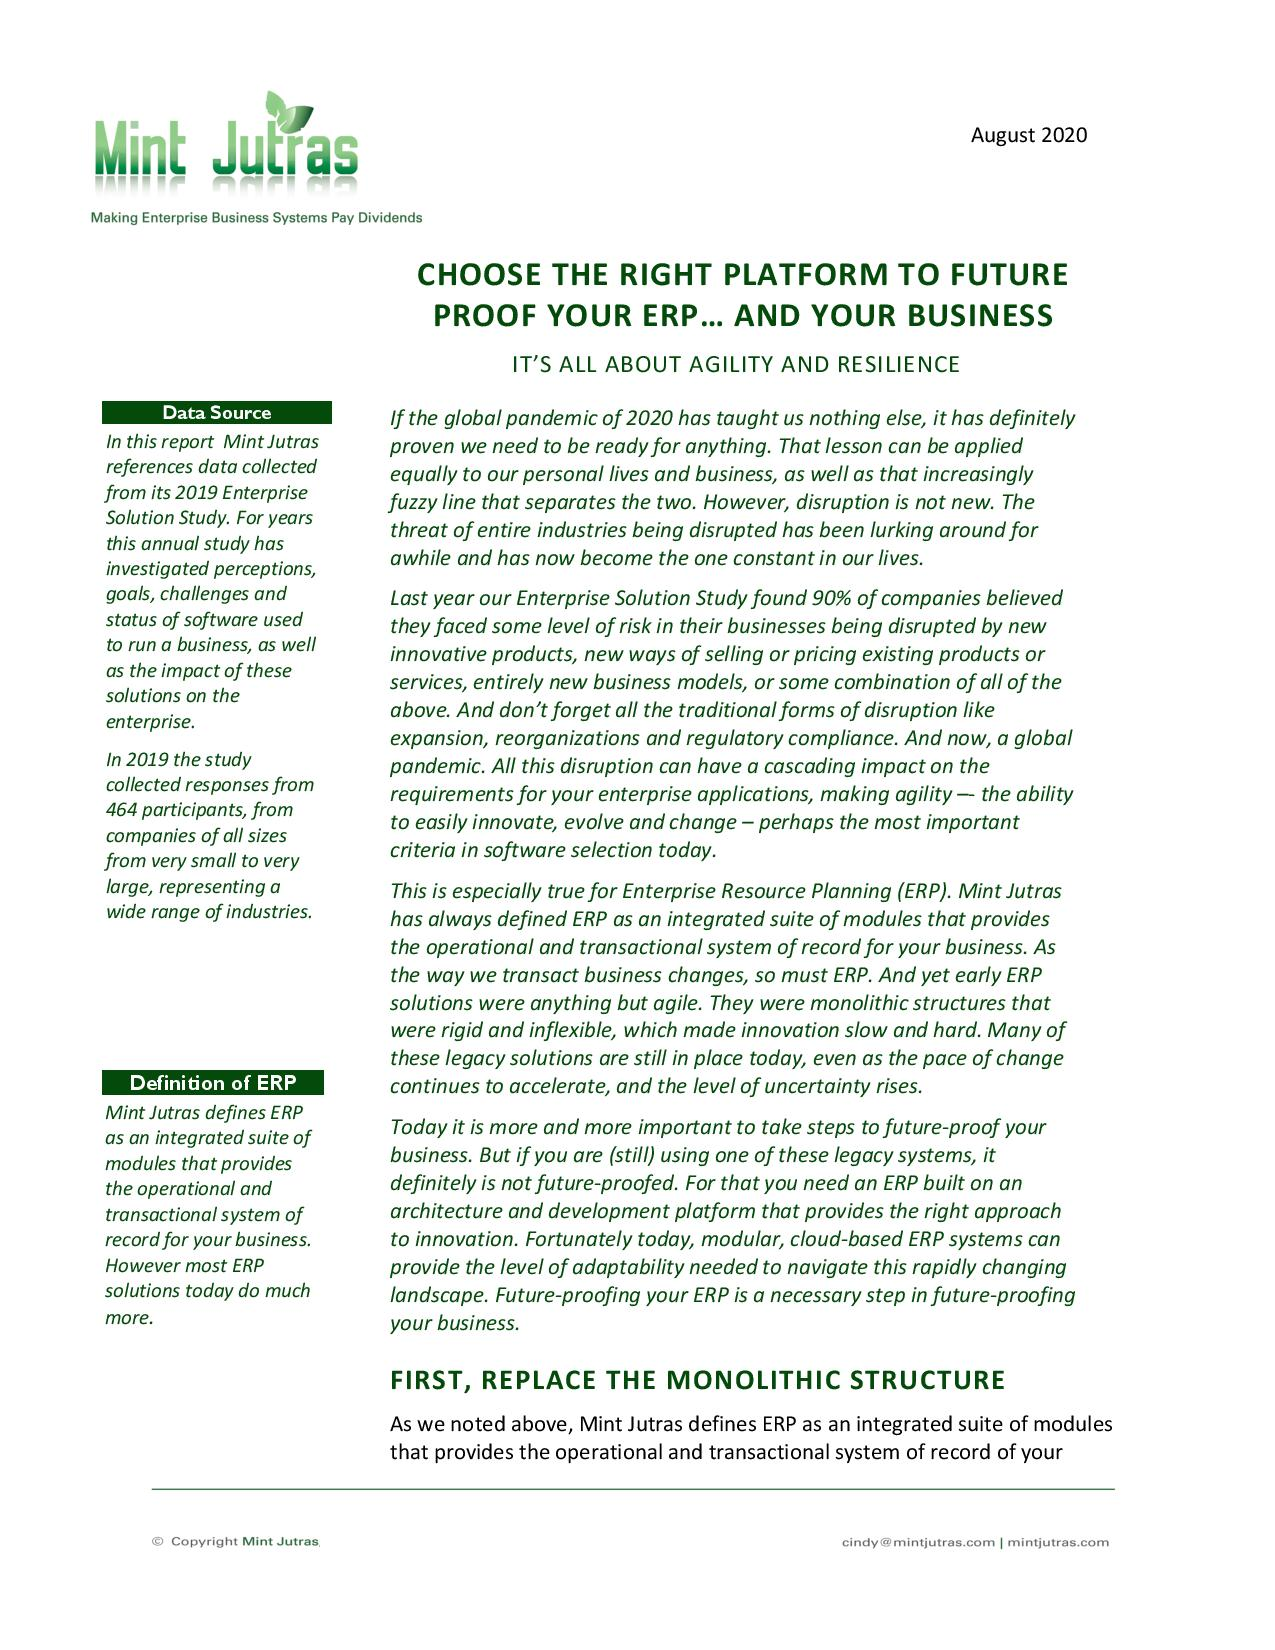 Selecting an ERP System? Here's How to Get it Right, page 0